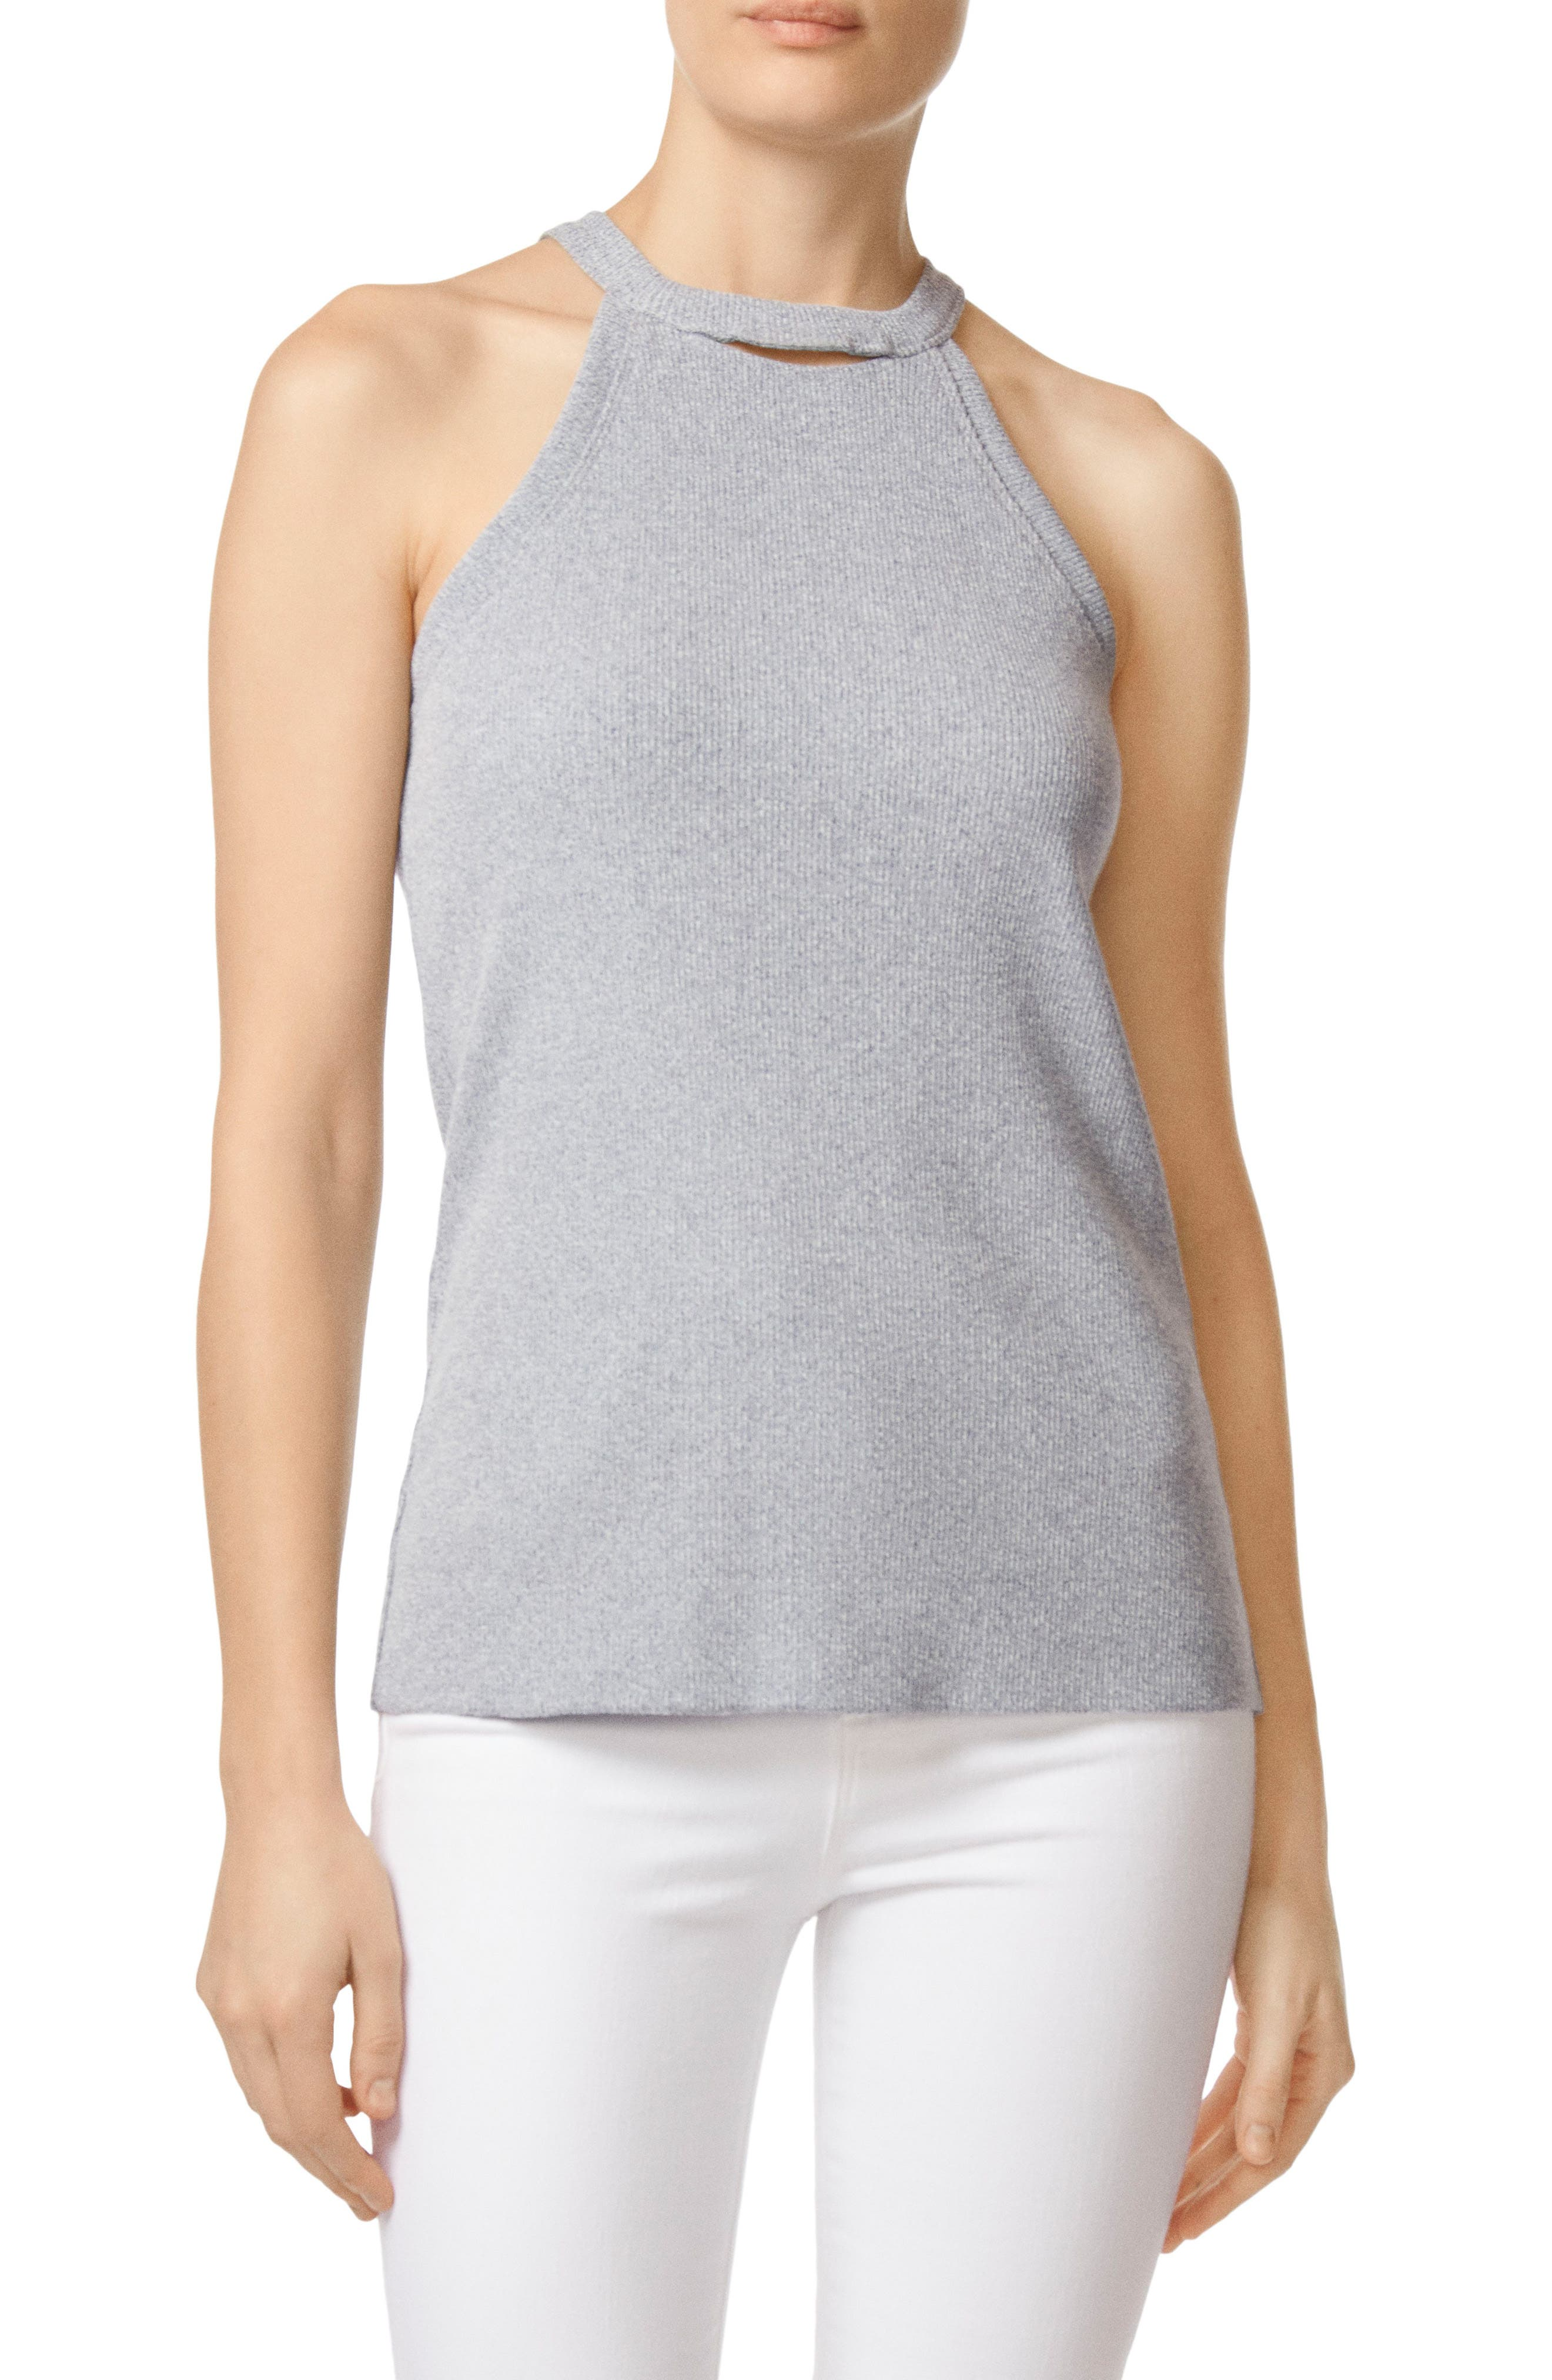 J BRAND,                             Coastal Halter Top,                             Main thumbnail 1, color,                             402